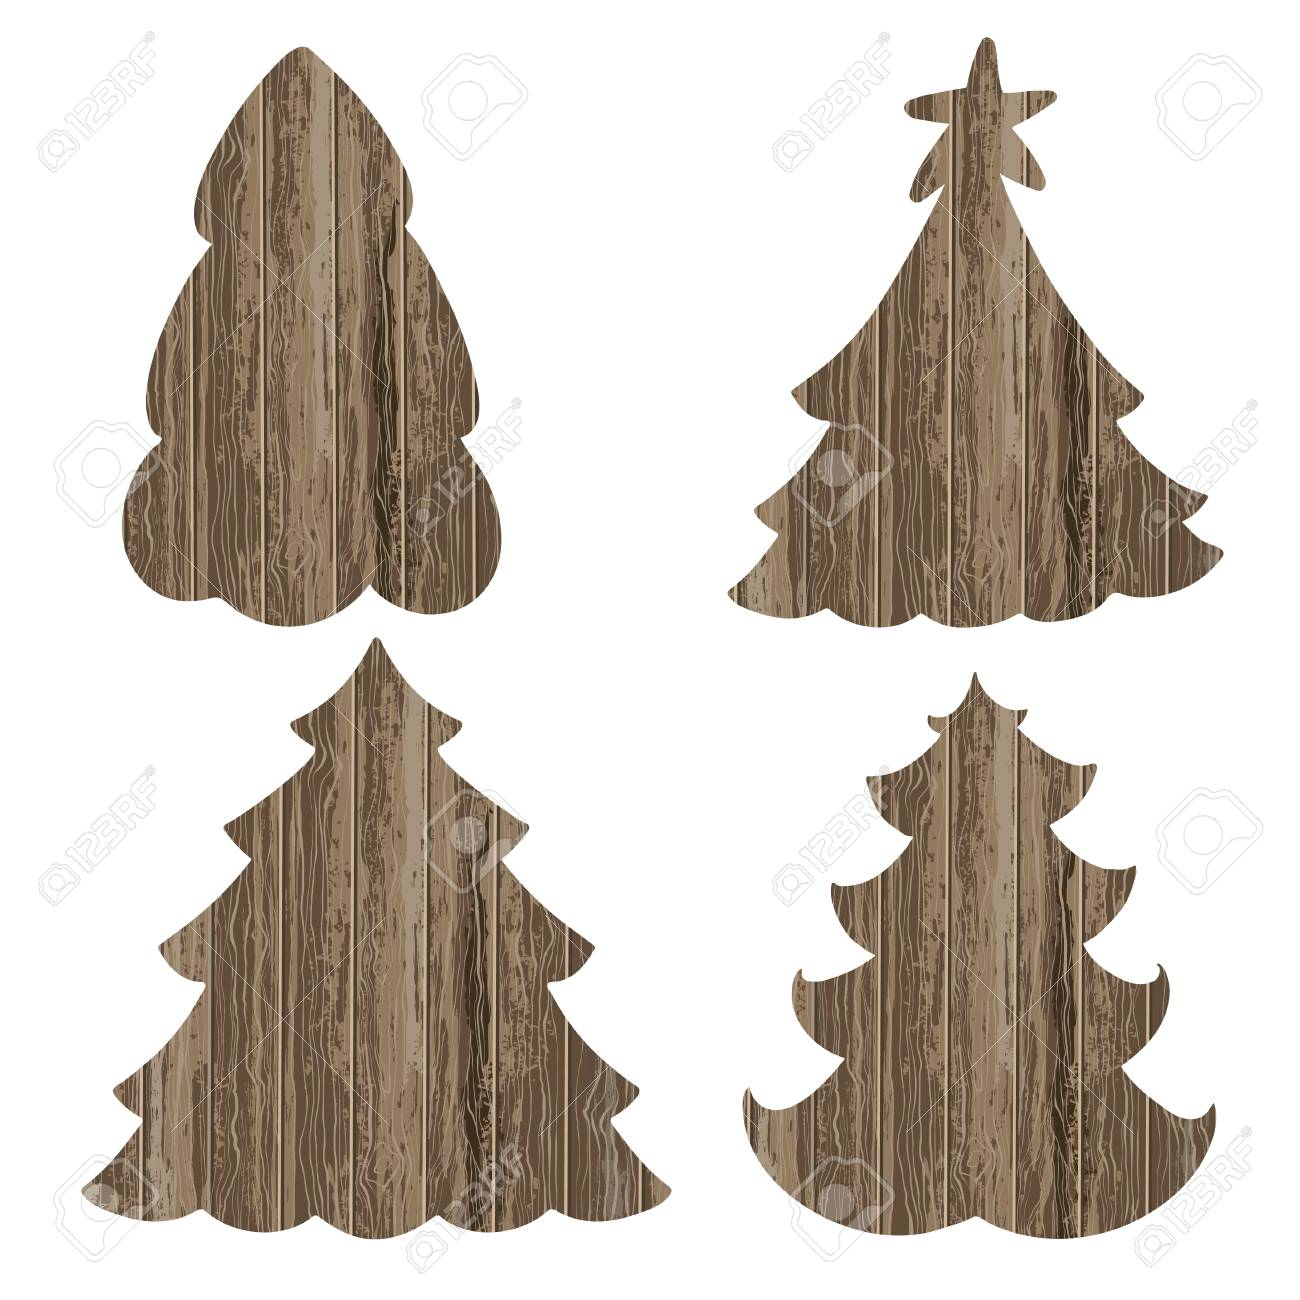 Wooden Christmas Trees Vector Set Isolated Elements On A White